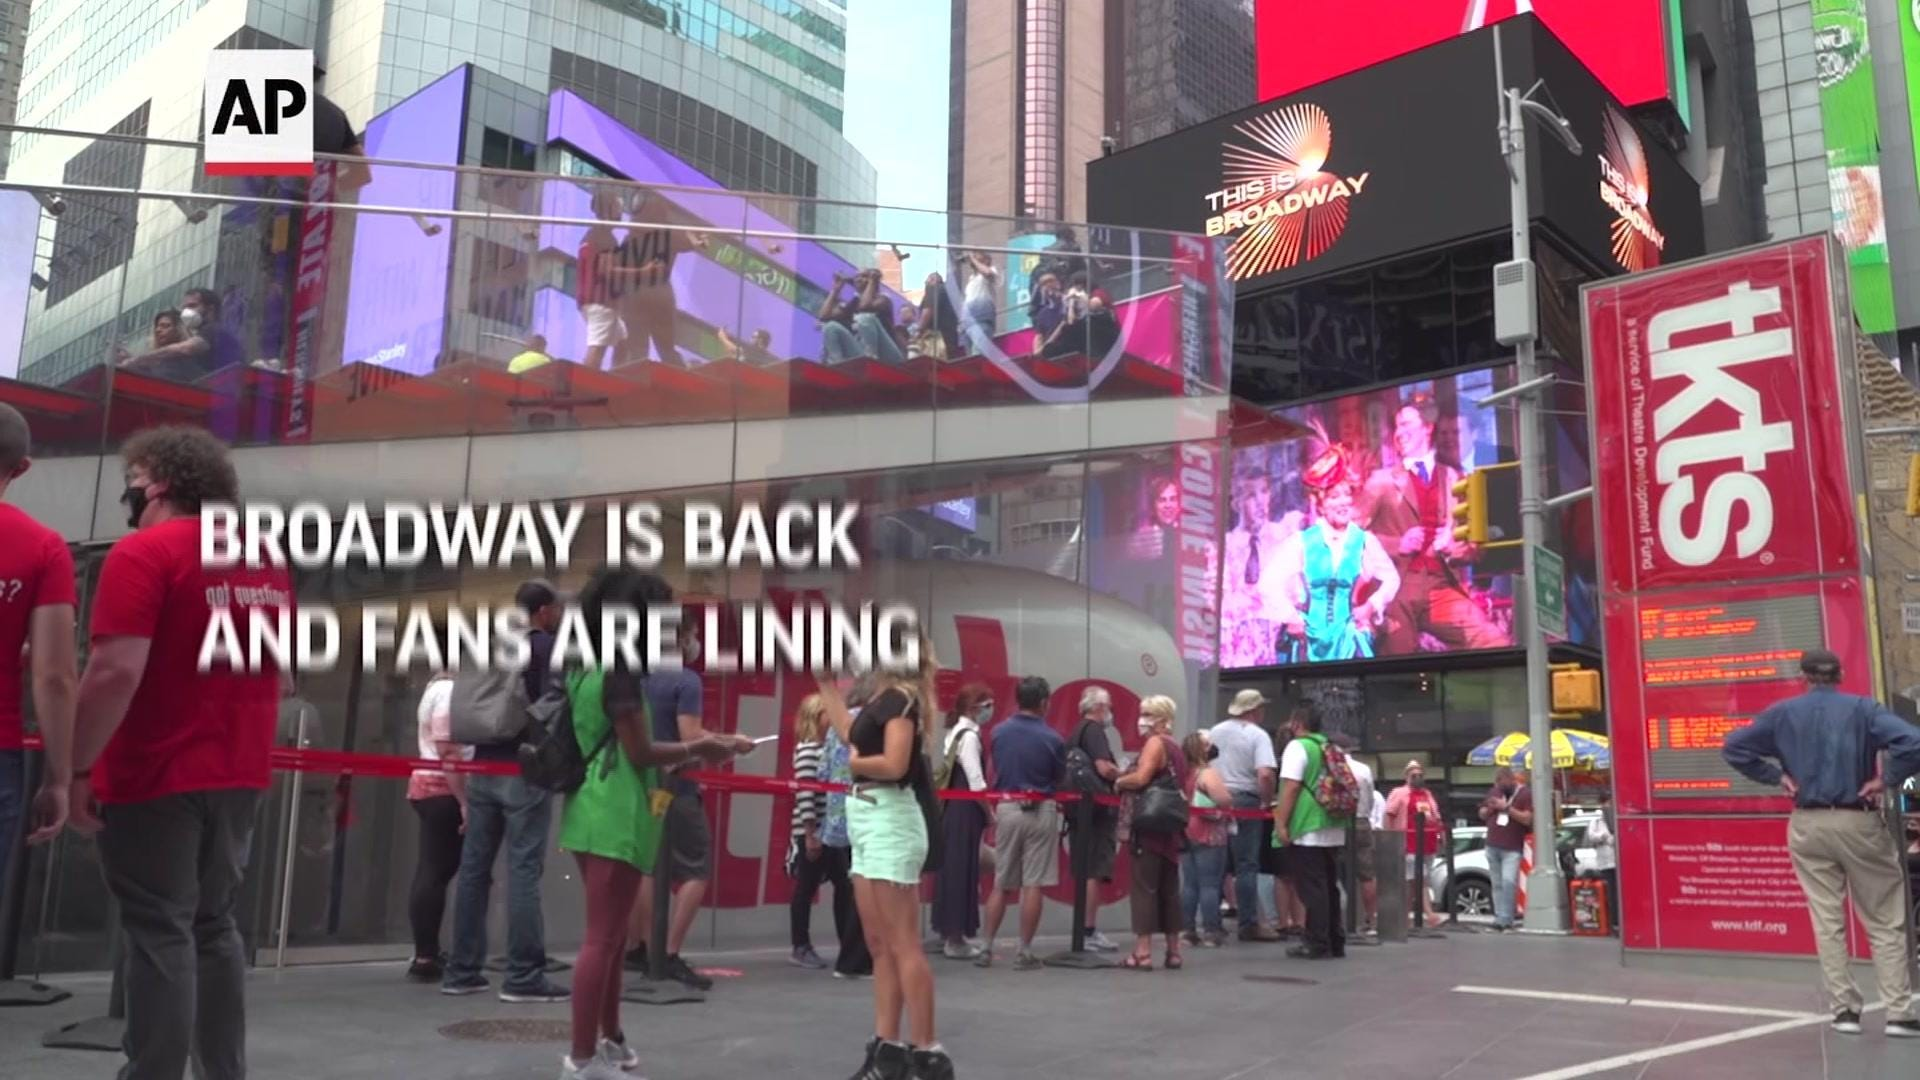 Fans line up for tickets as Broadway reopens 1